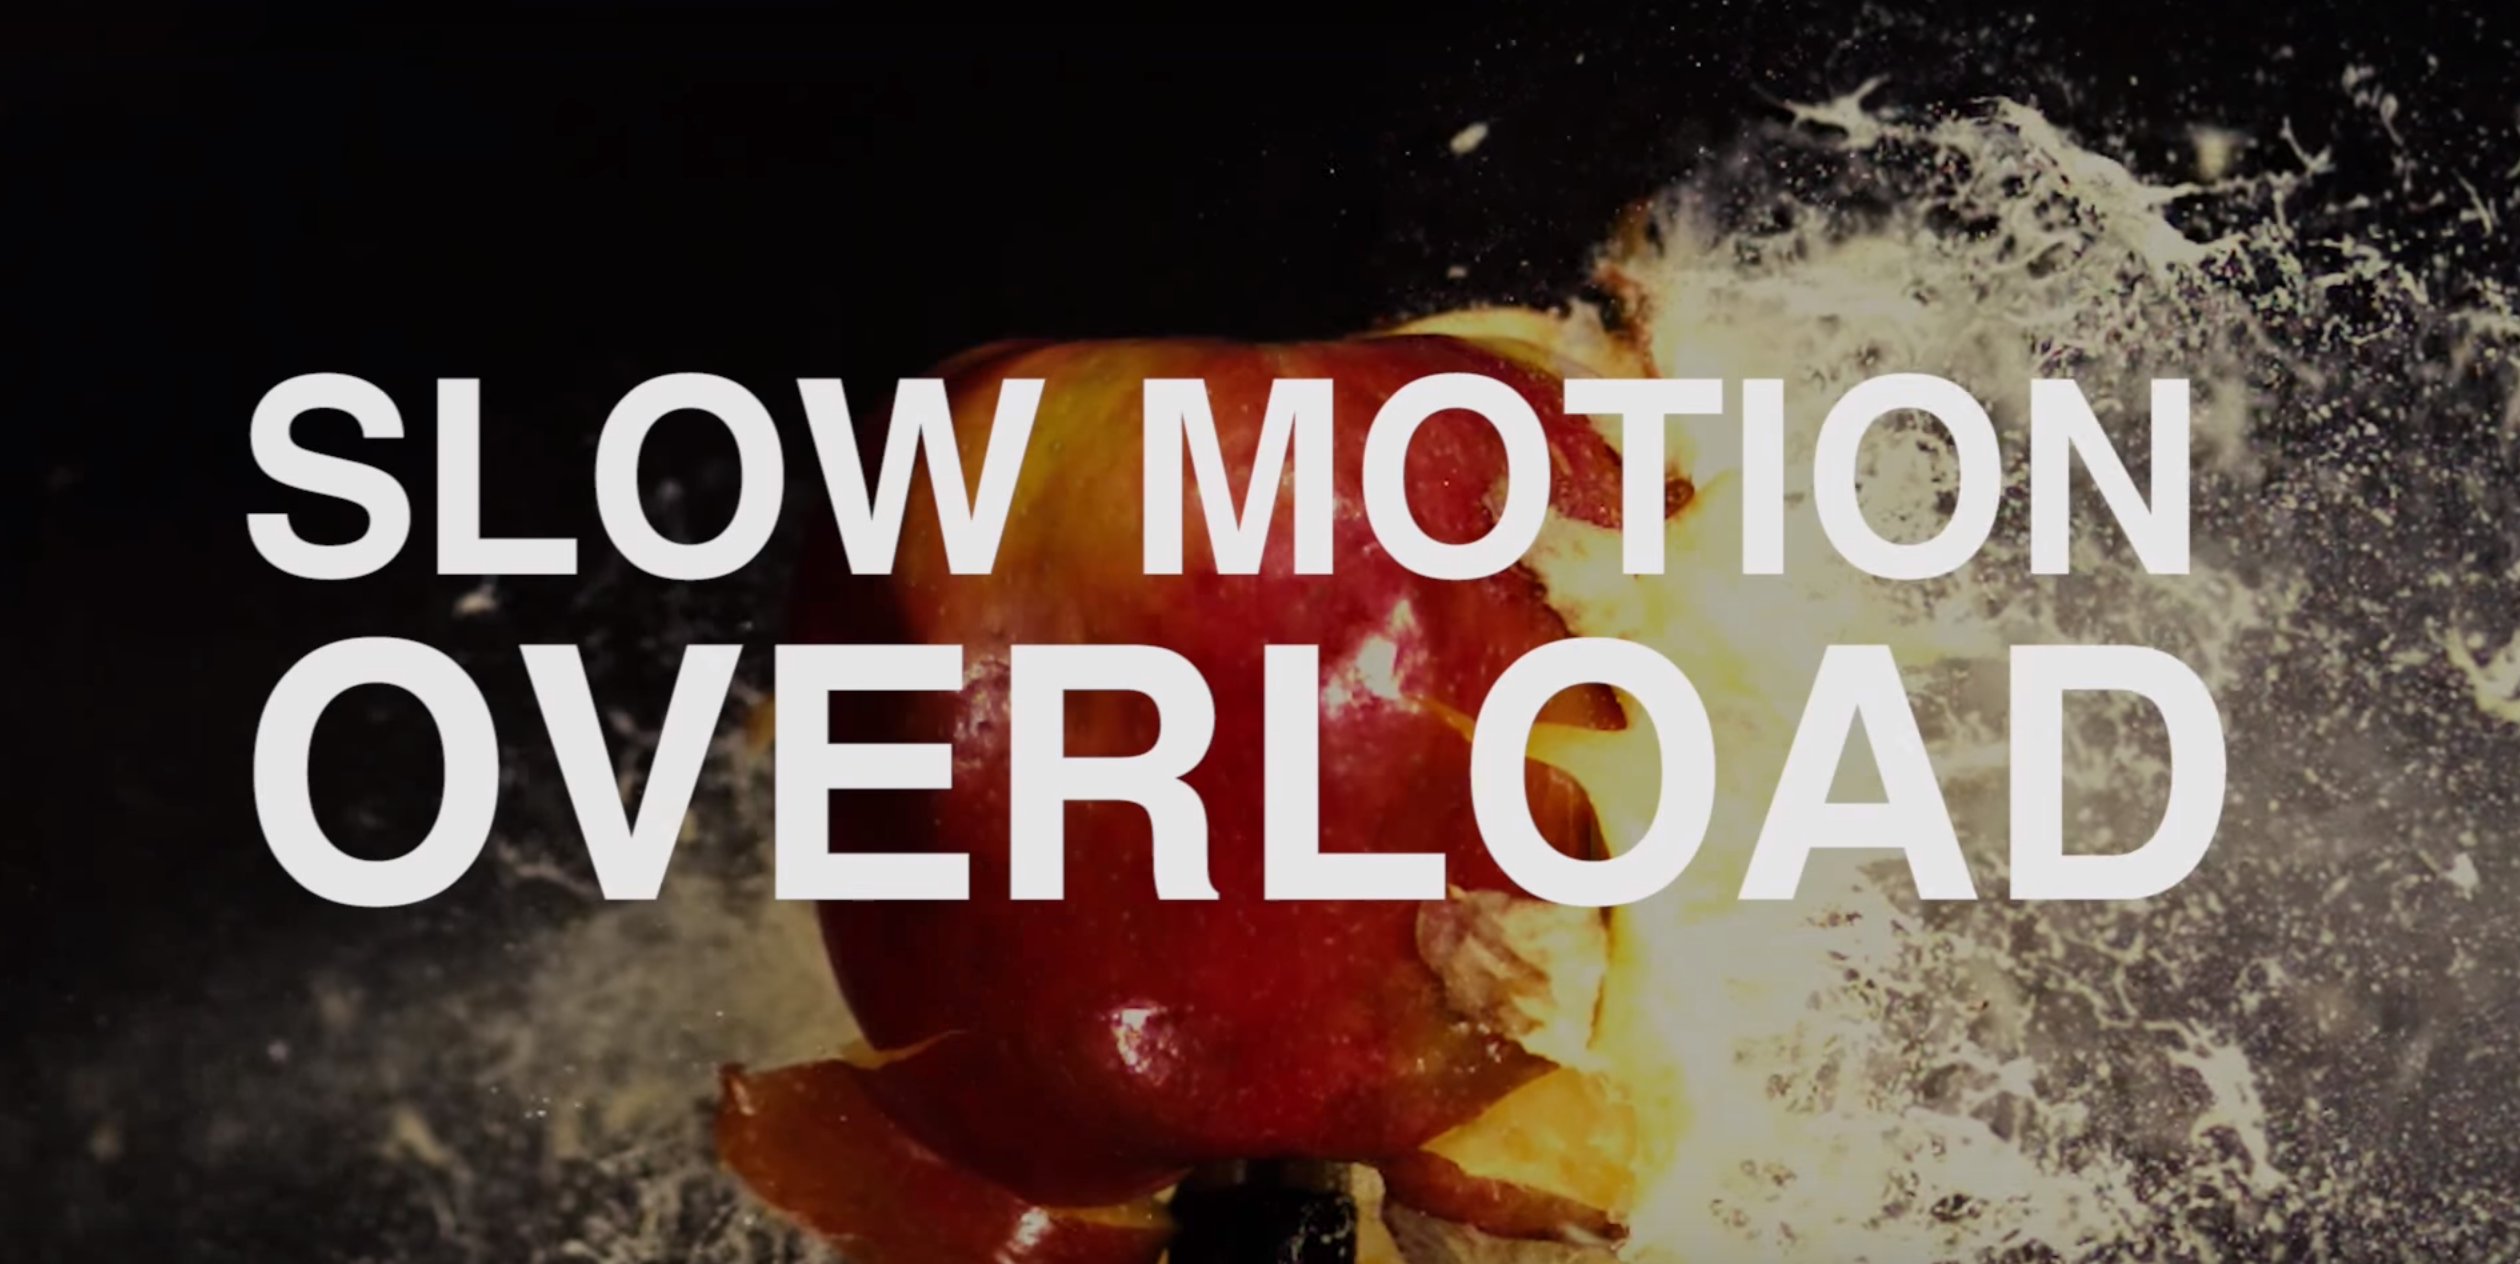 slow-motion-overload-video